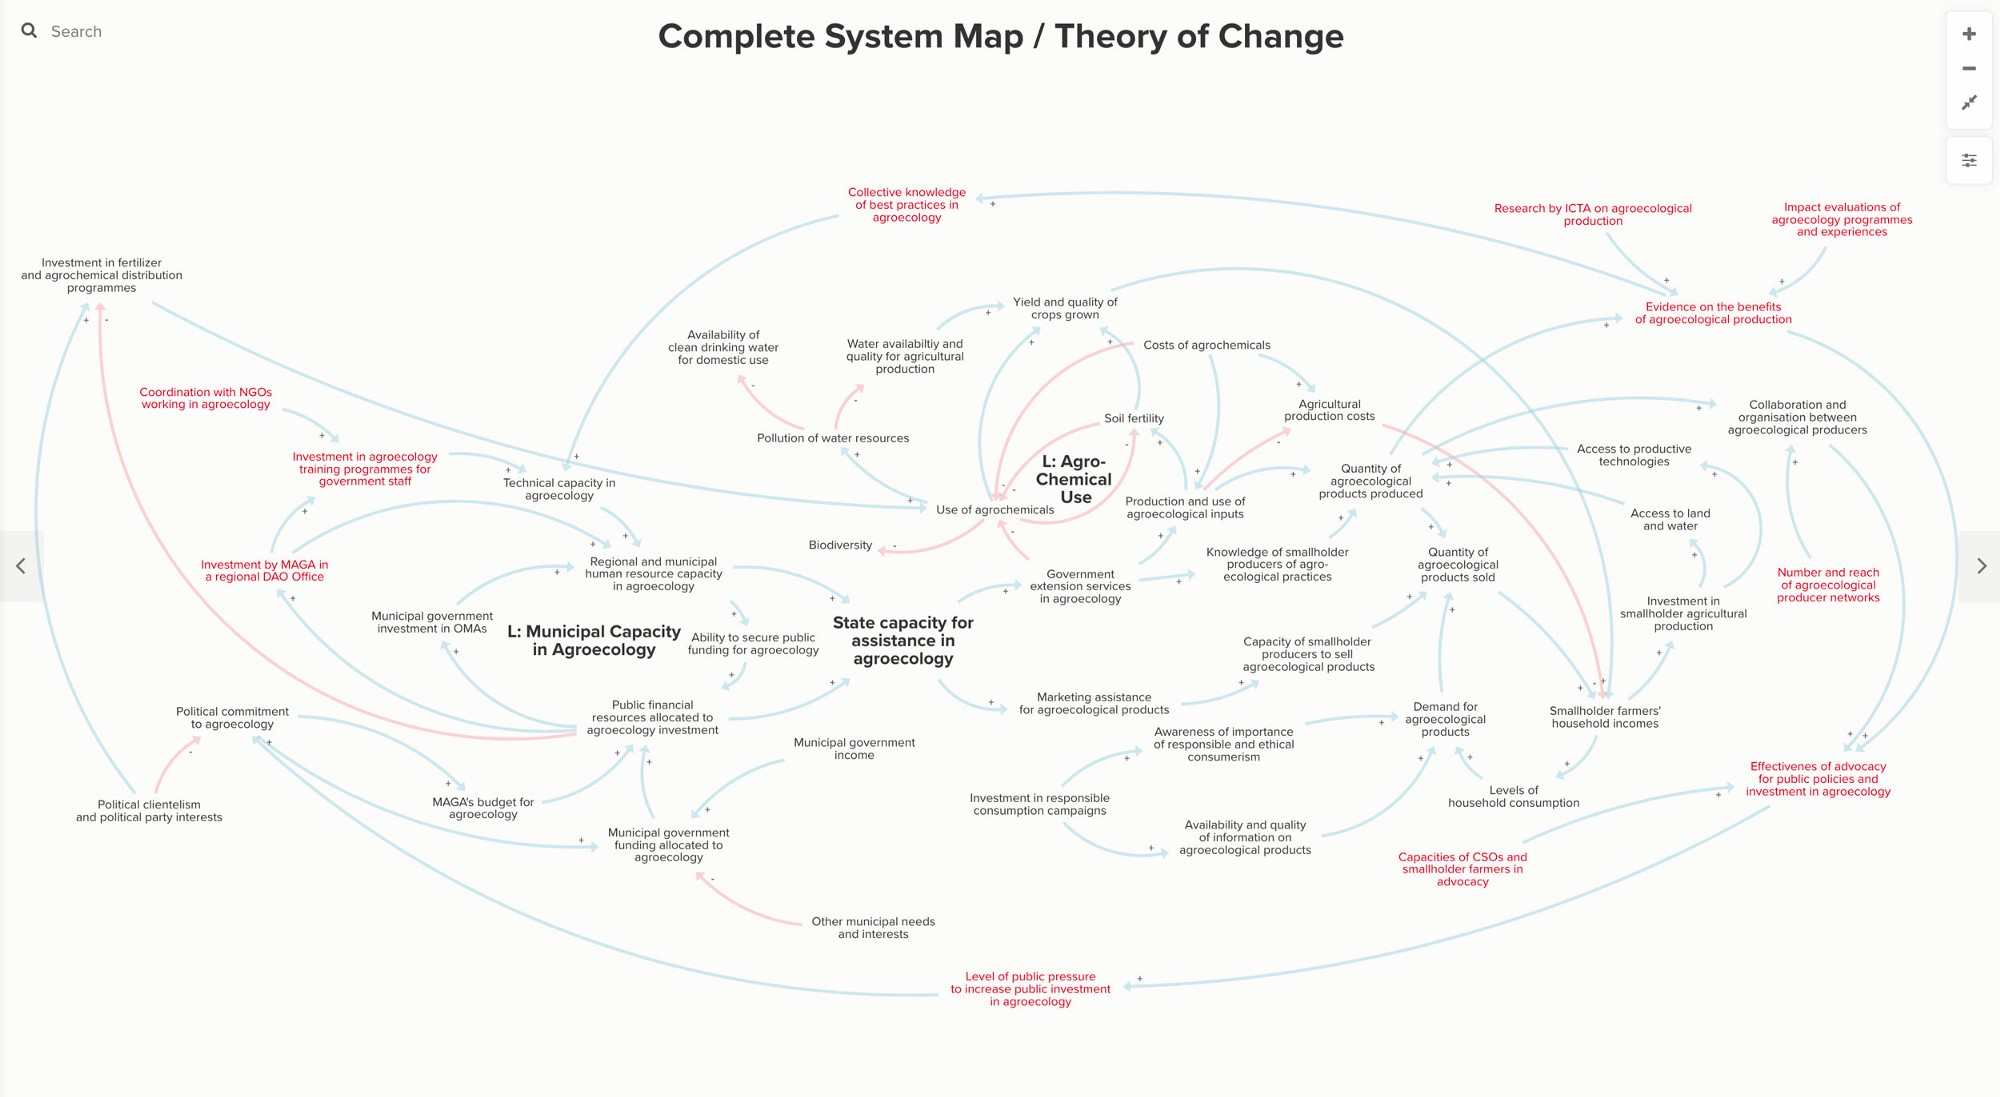 Two approaches for combining theories of change and system maps red text represents intervention points click here to view the interactive presentation ccuart Choice Image